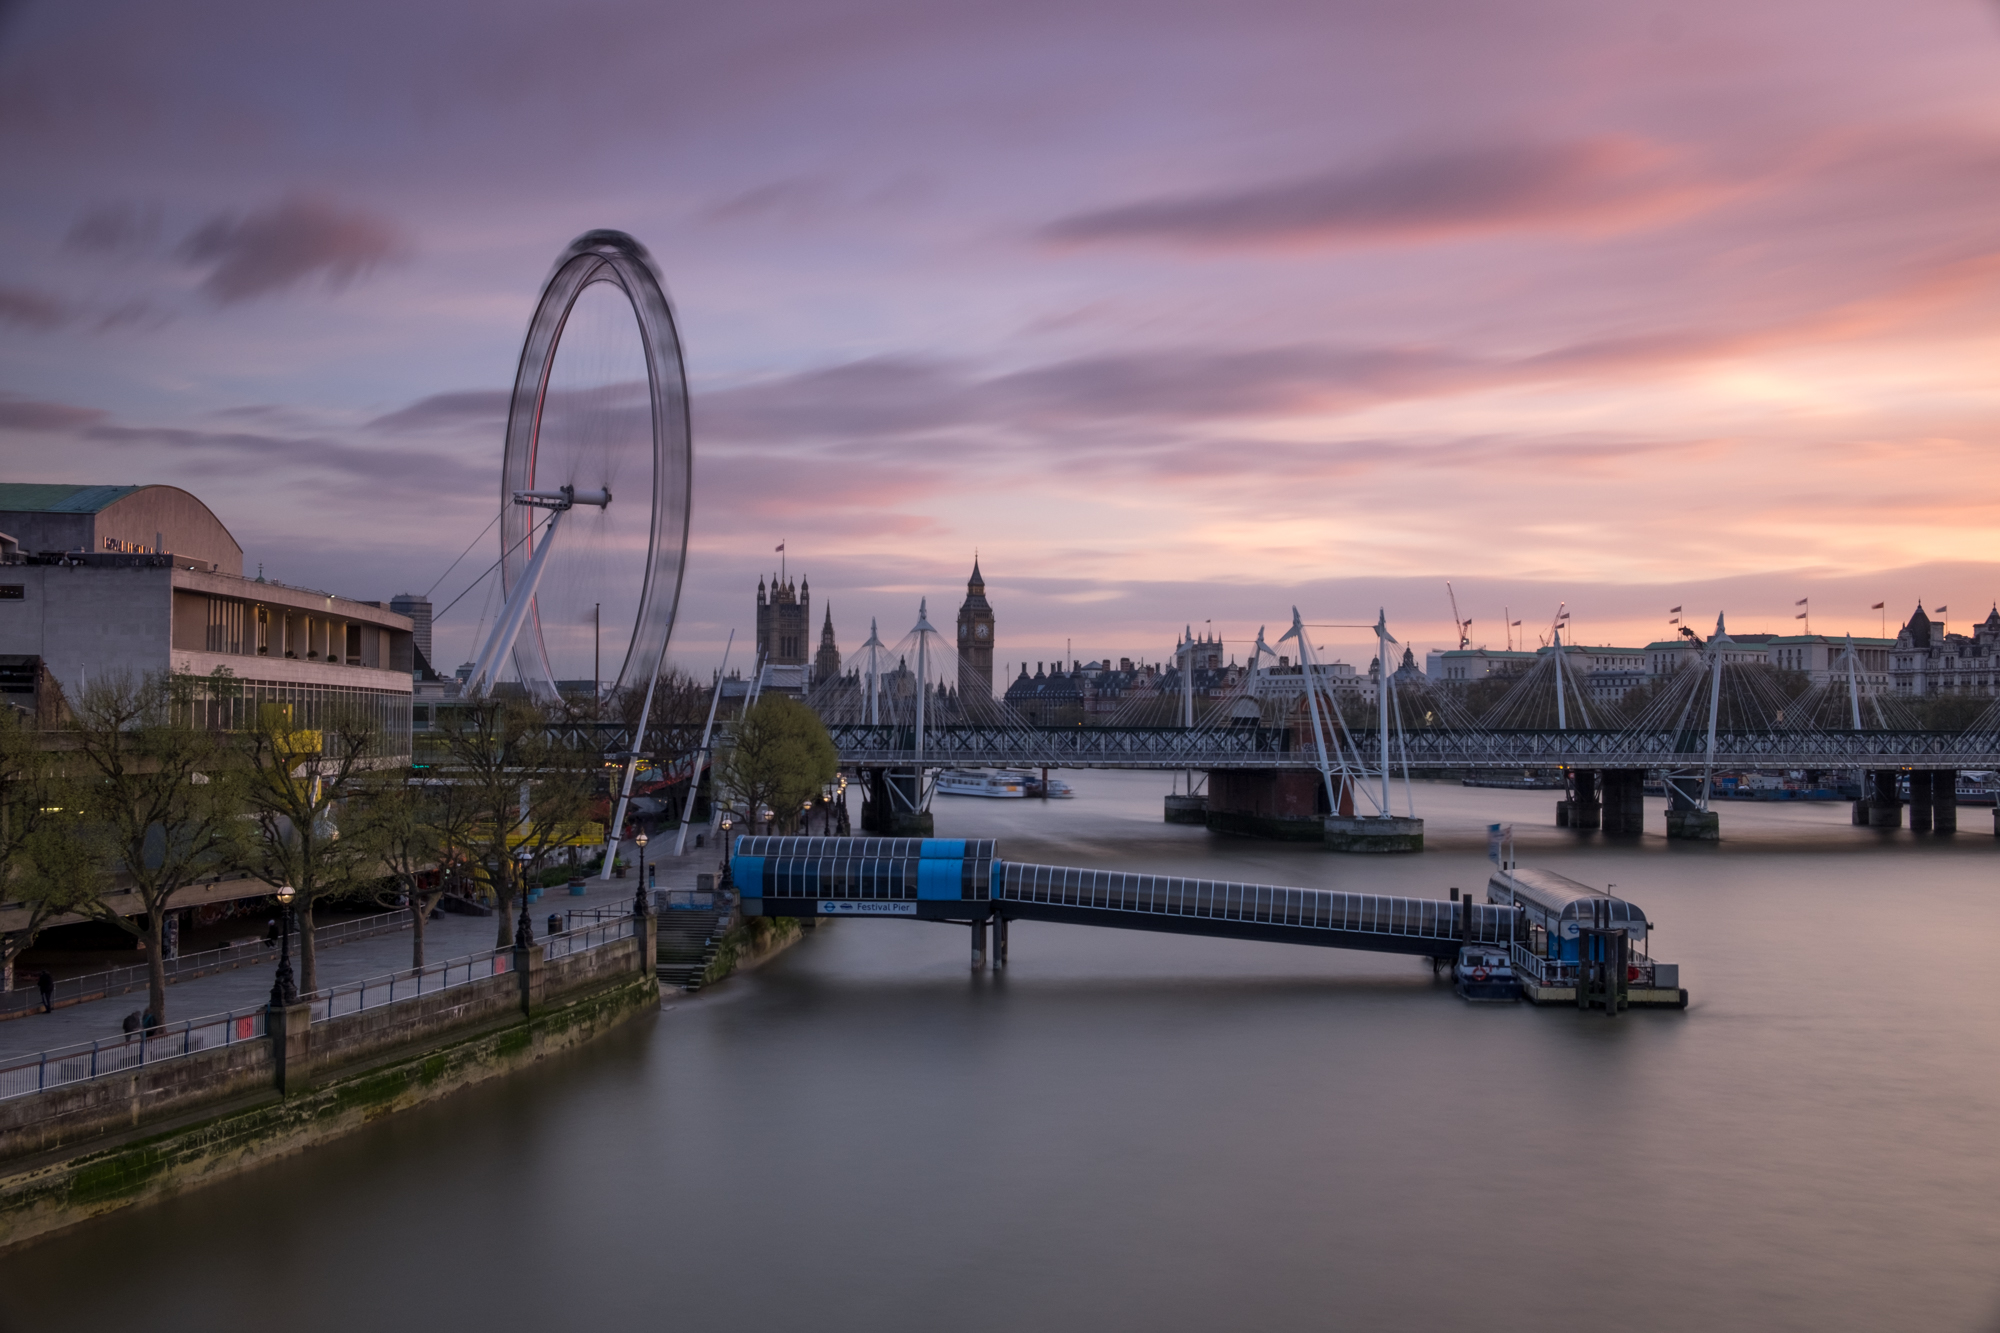 RAW image of the sunset at the South Bank taken by Trevor Sherwin